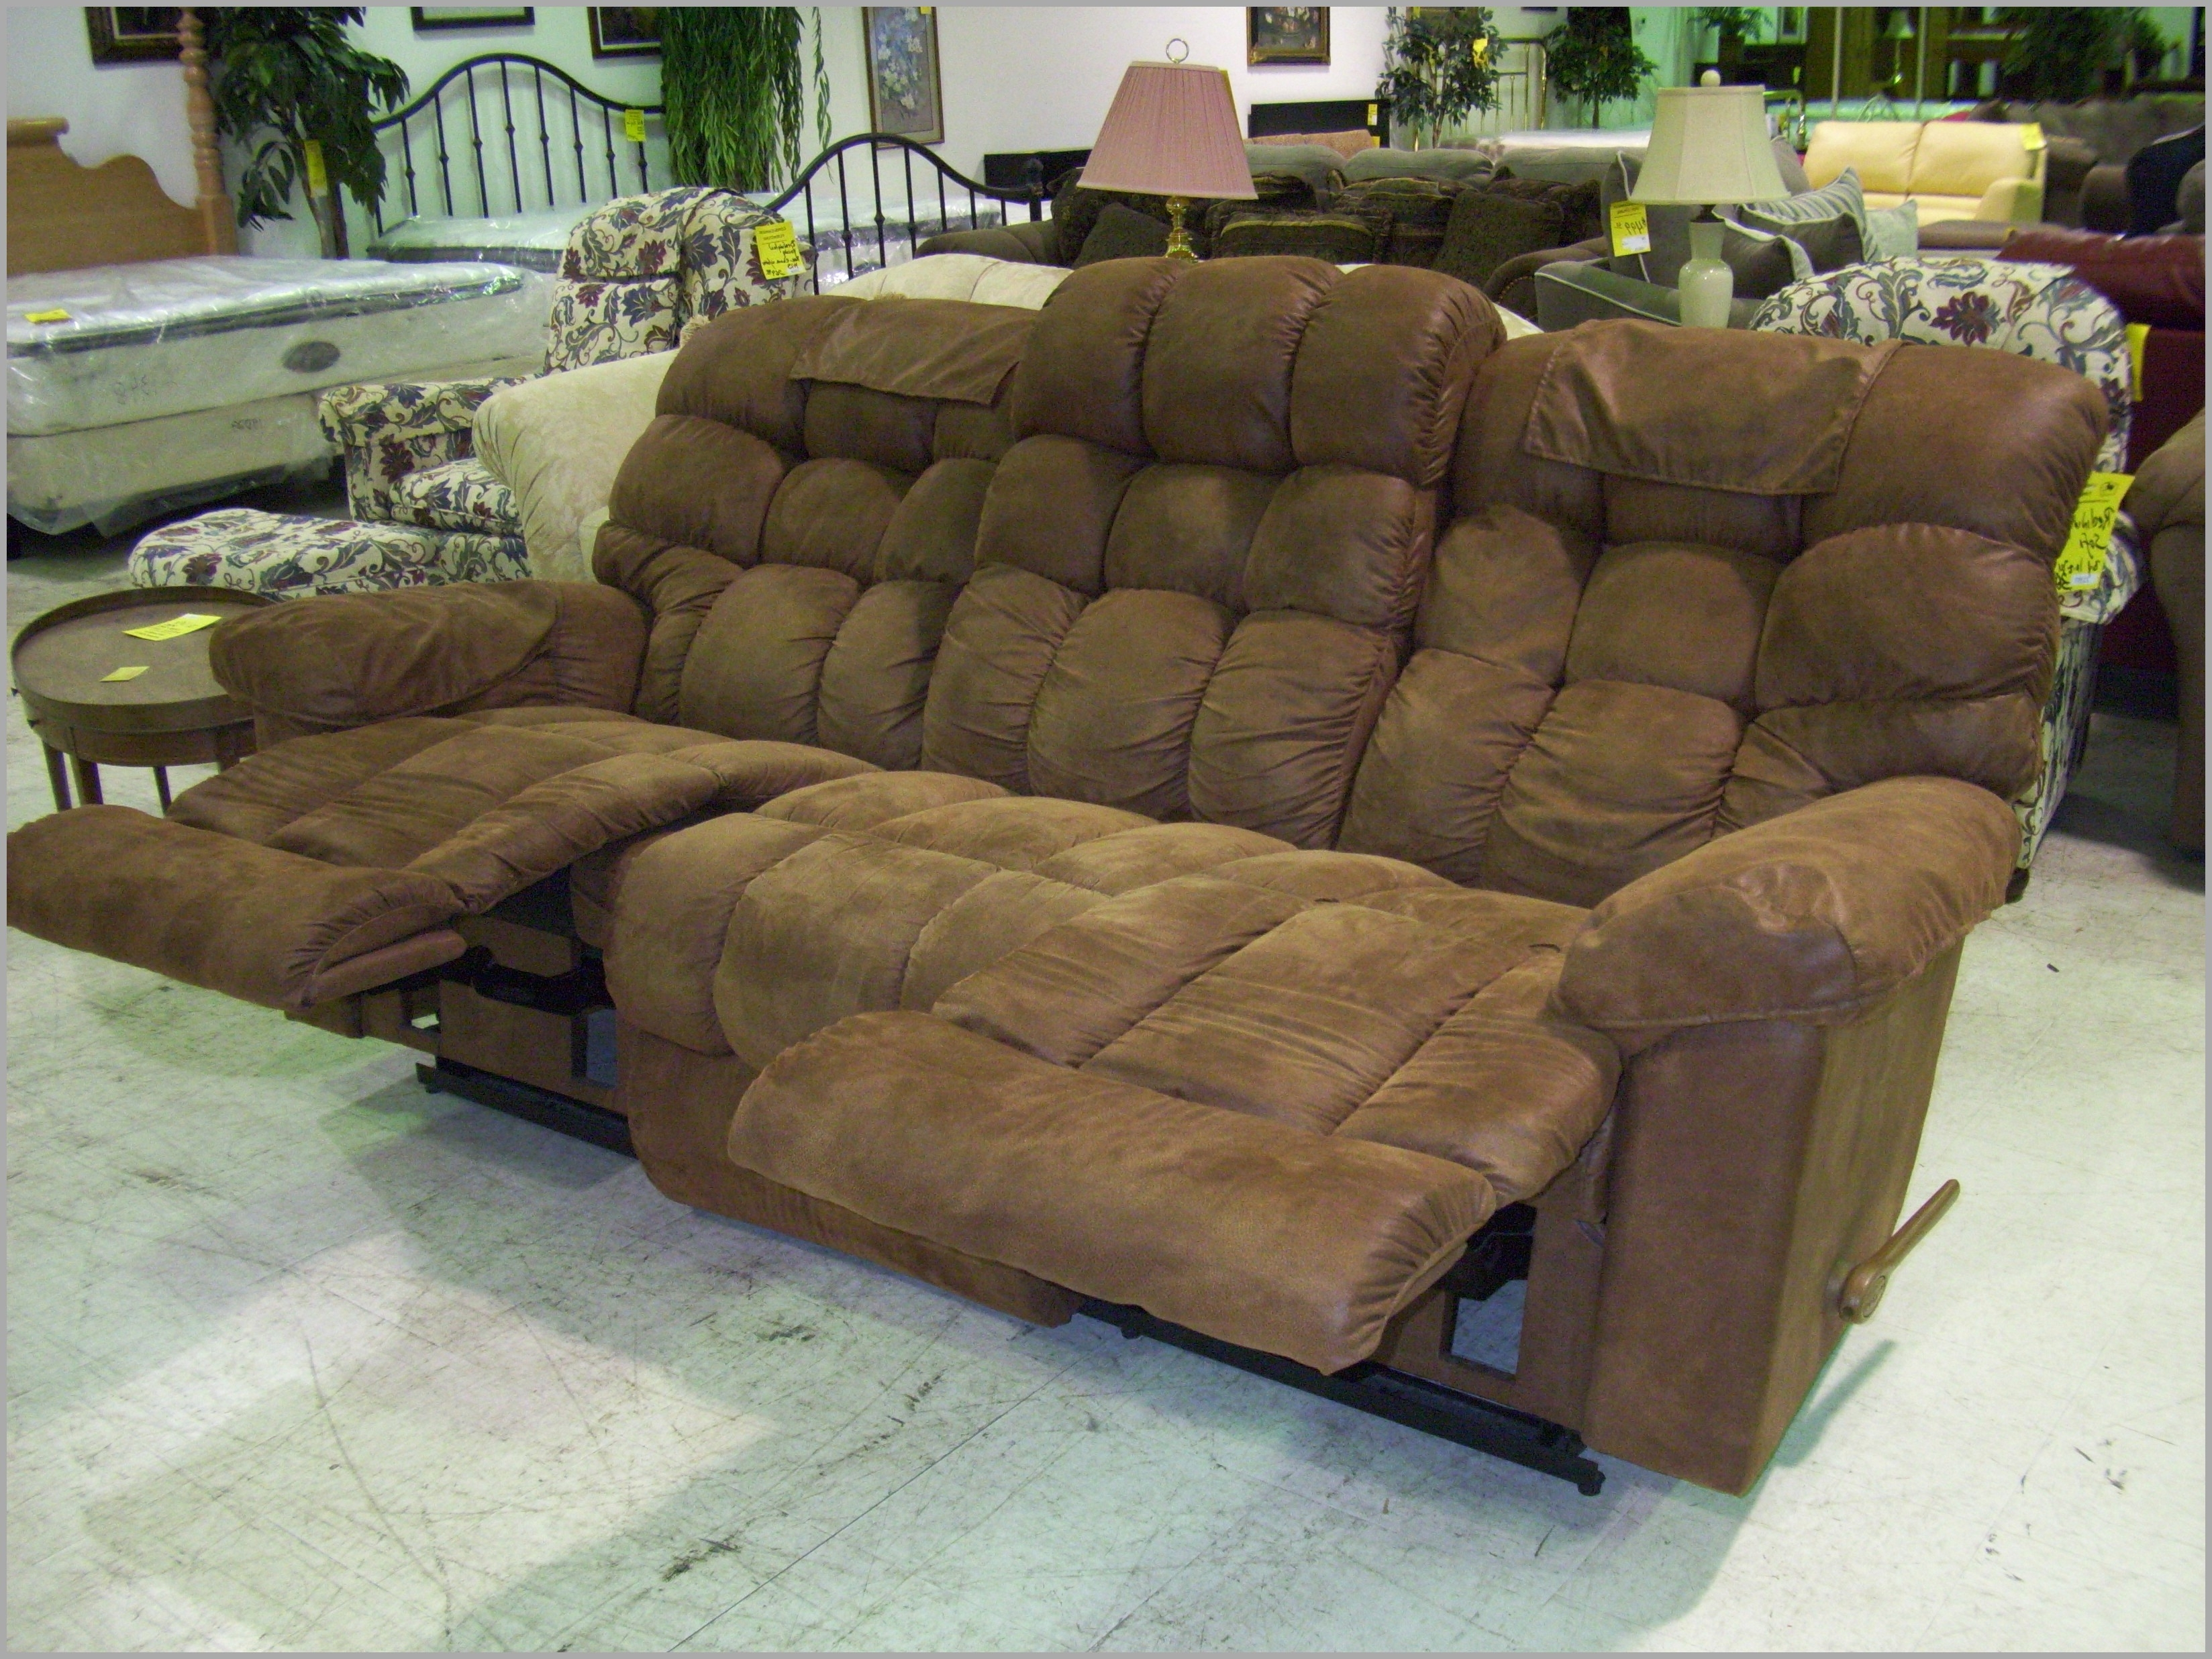 Fashionable Sofas : Recliners Near Me Sears Power Lift Chairs Sears Sectionals With Regard To Sectional Sofas At Sears (View 3 of 20)